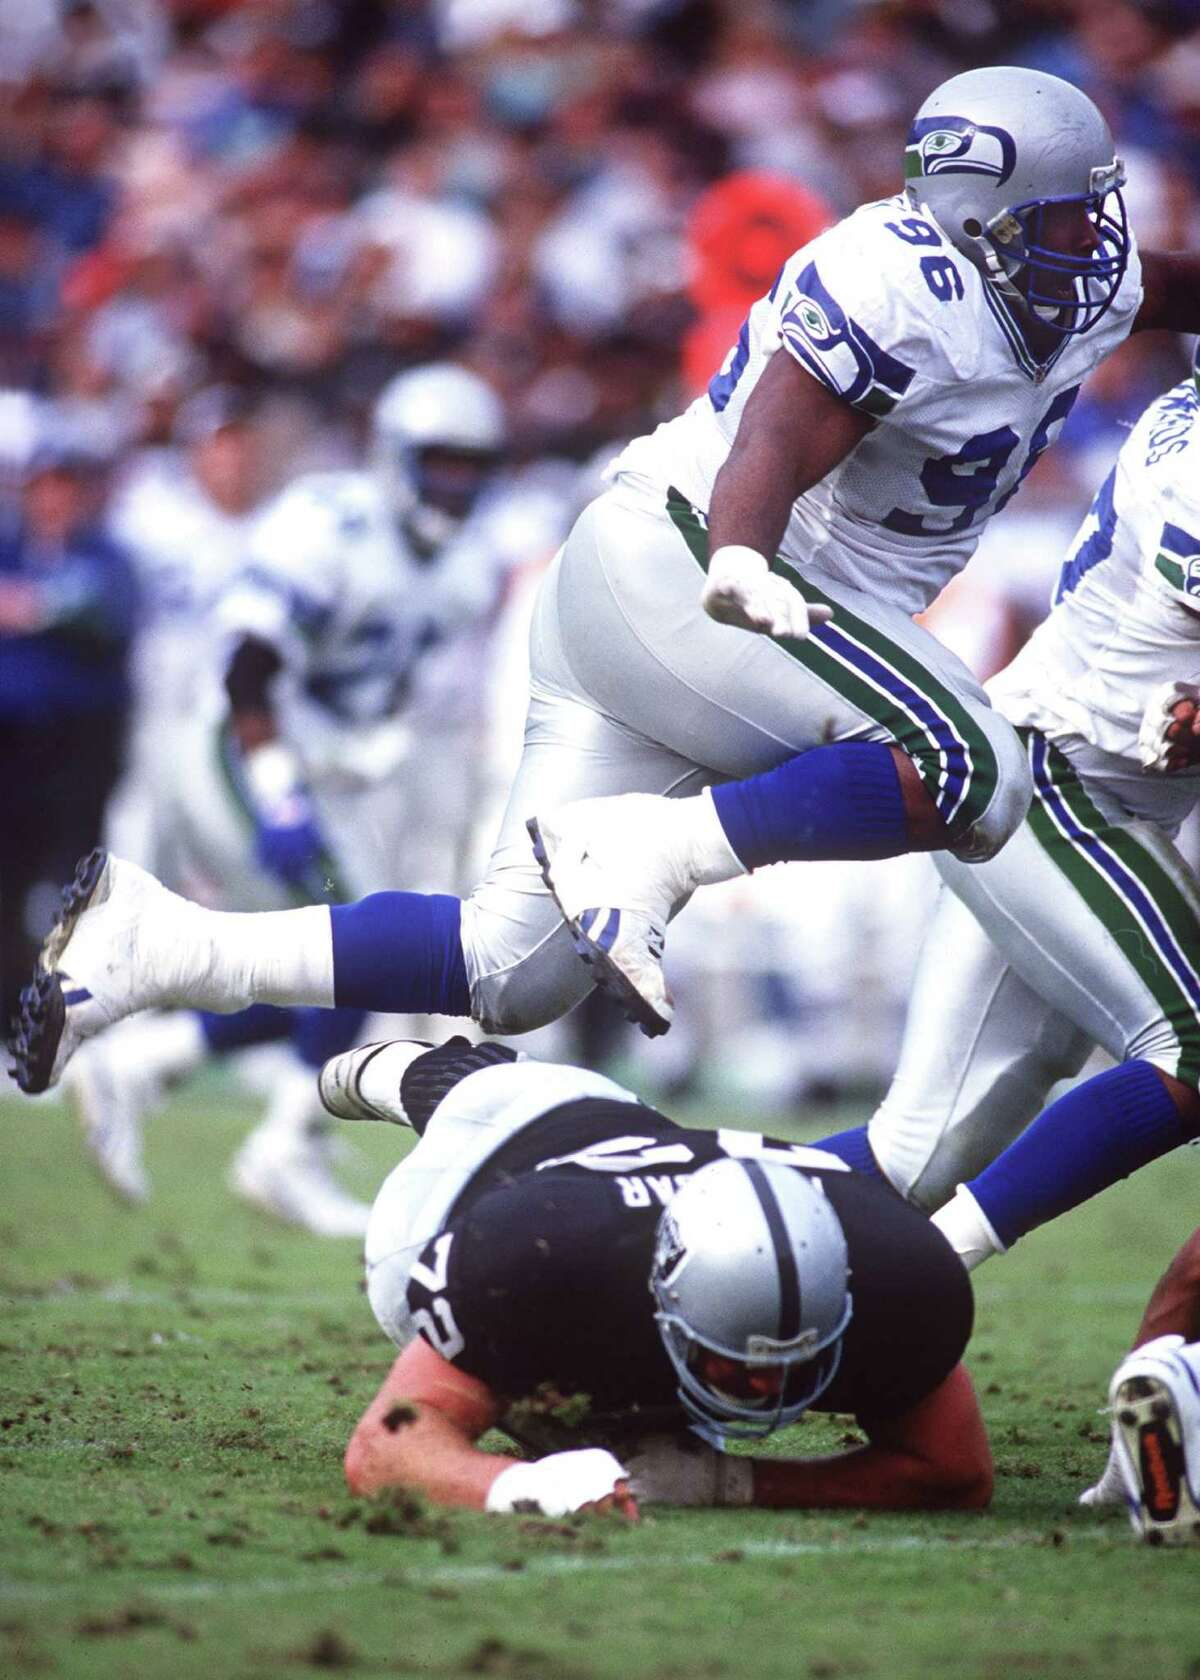 Seattle defensive tackle Cortez Kennedy hurdles Los Angeles offensive lineman Don Mosebar during the Seahawks' 27-23 loss to the Raiders at the Los Angeles Memorial Coliseum on Dec. 12, 1993.